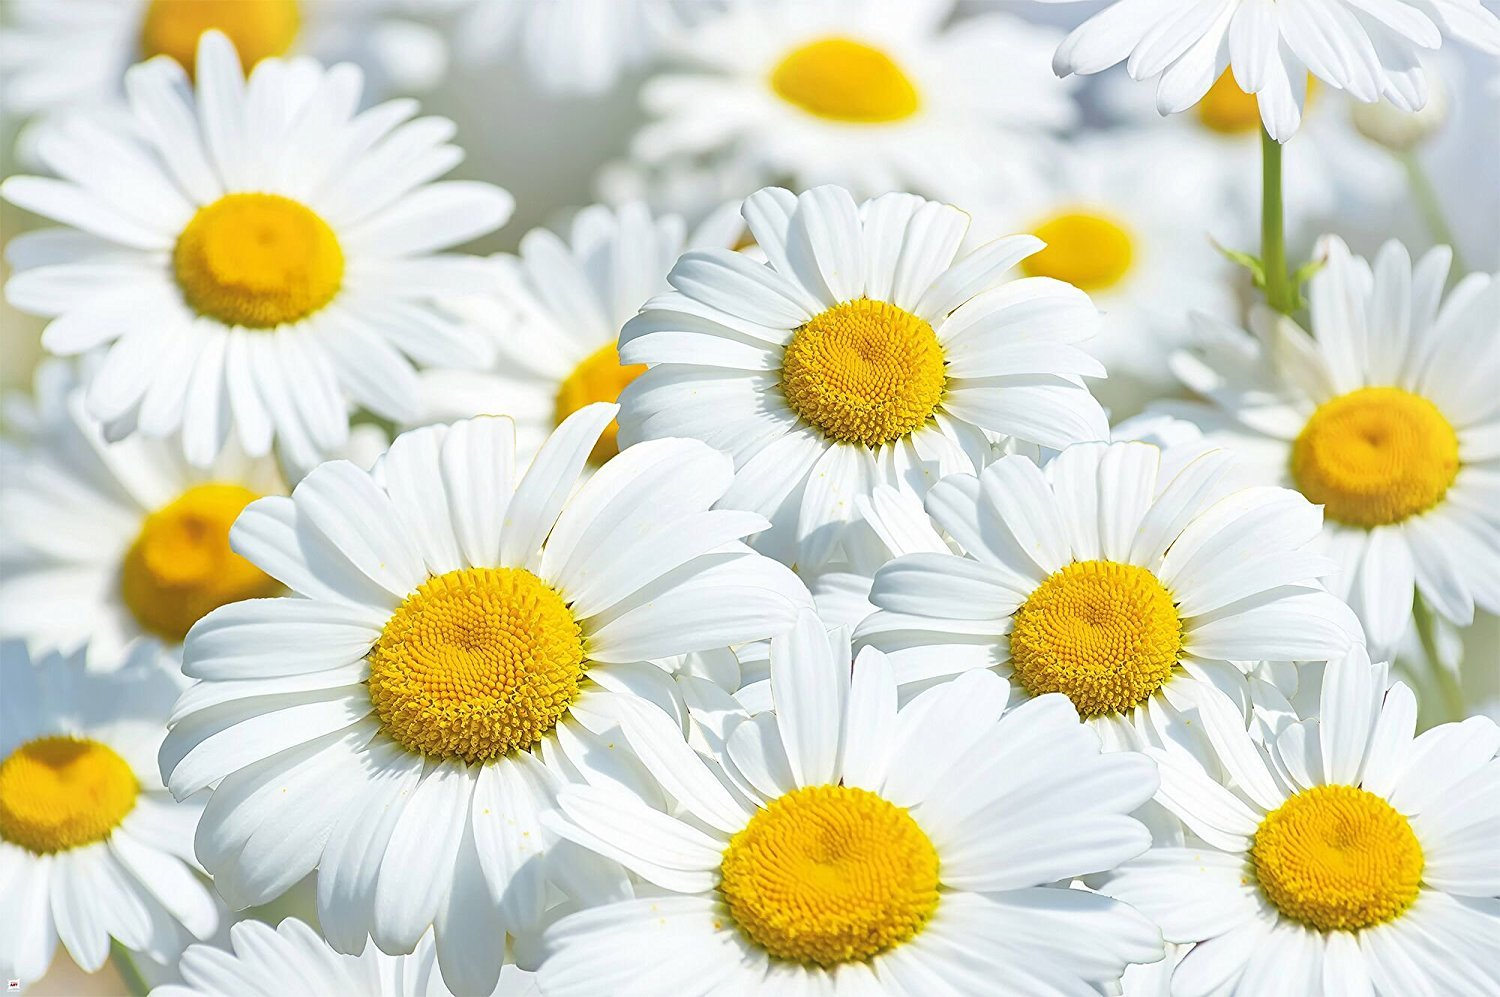 Daisies Flowers Meadow Wall paper Wall decoration by Great Art 55 Inch x 39.4 Inch 6104346